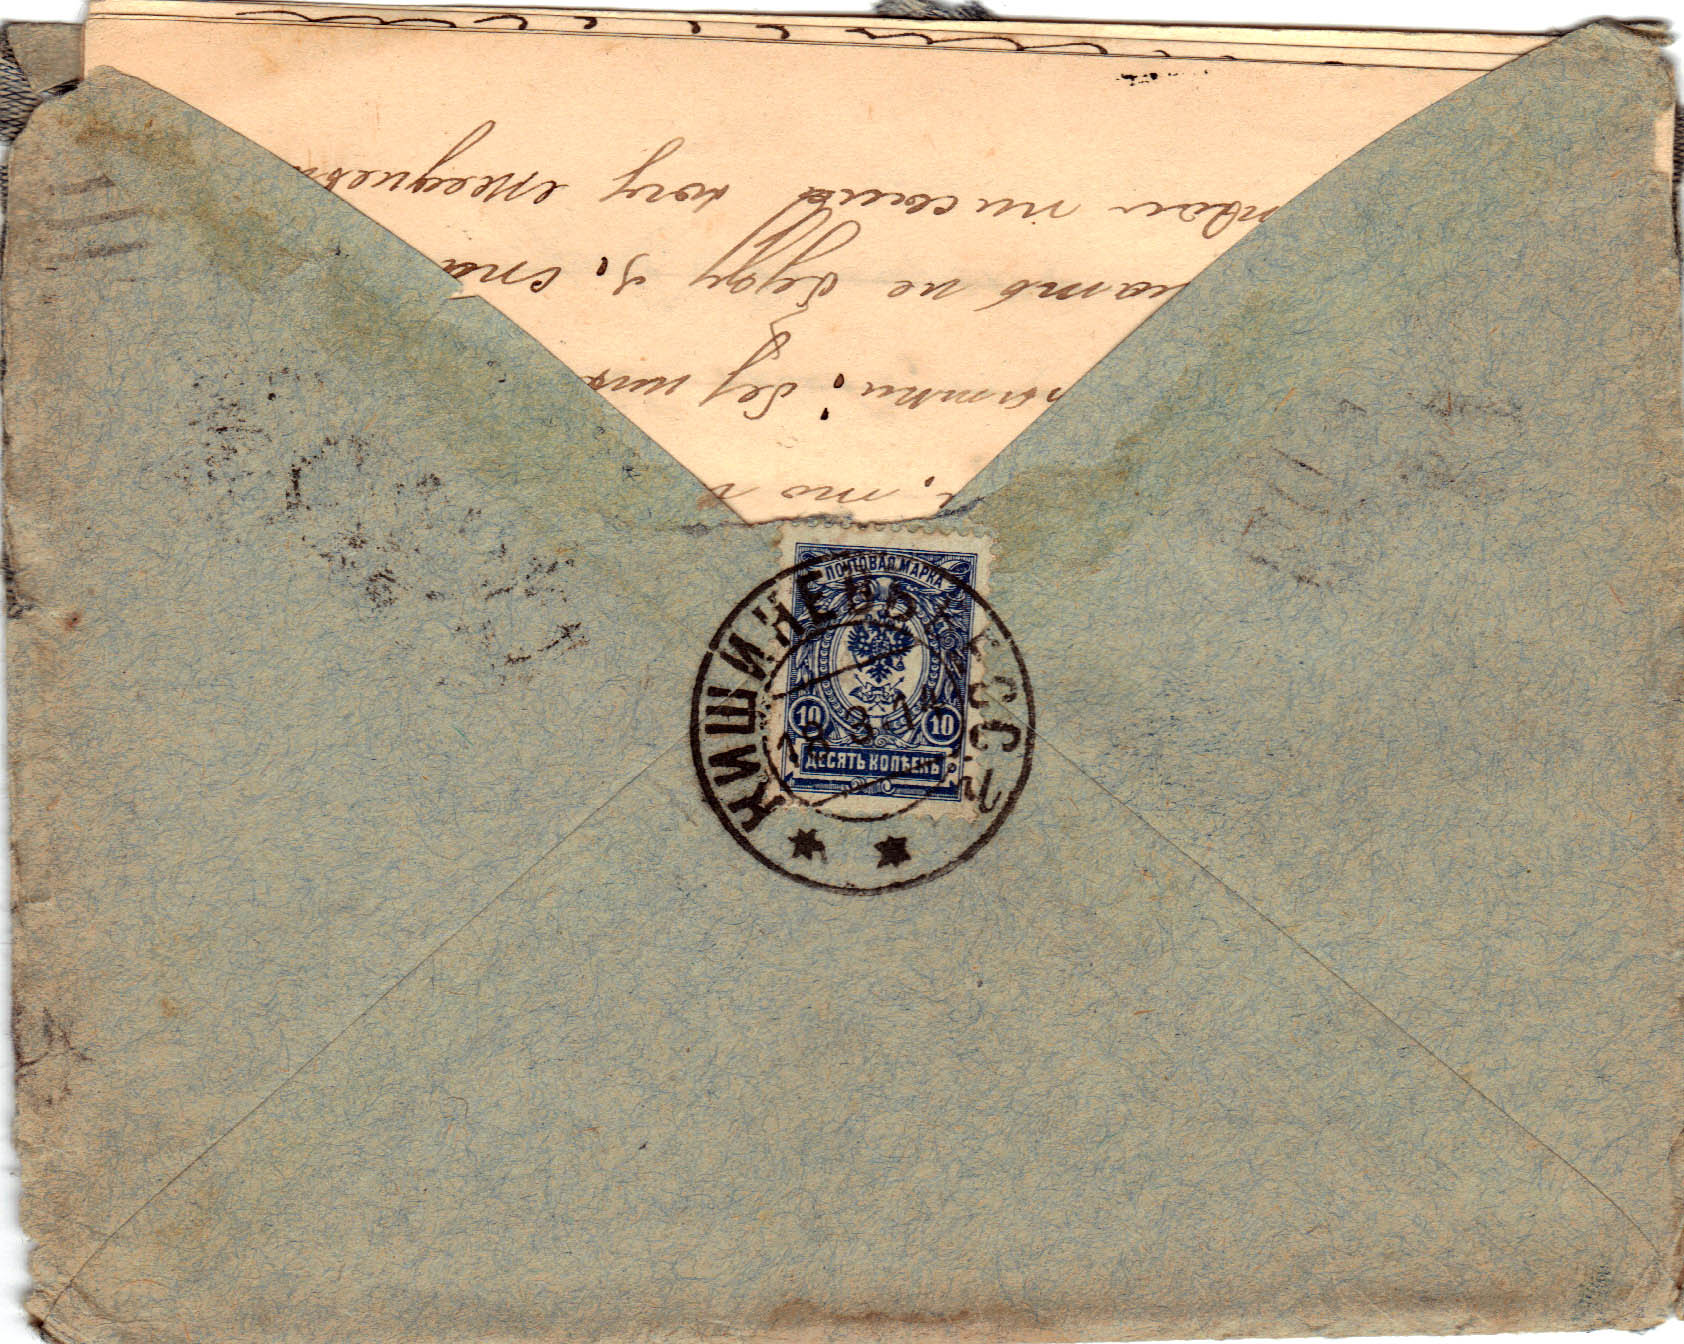 Letter to Poline from Aron March 16, 1914 envelope B